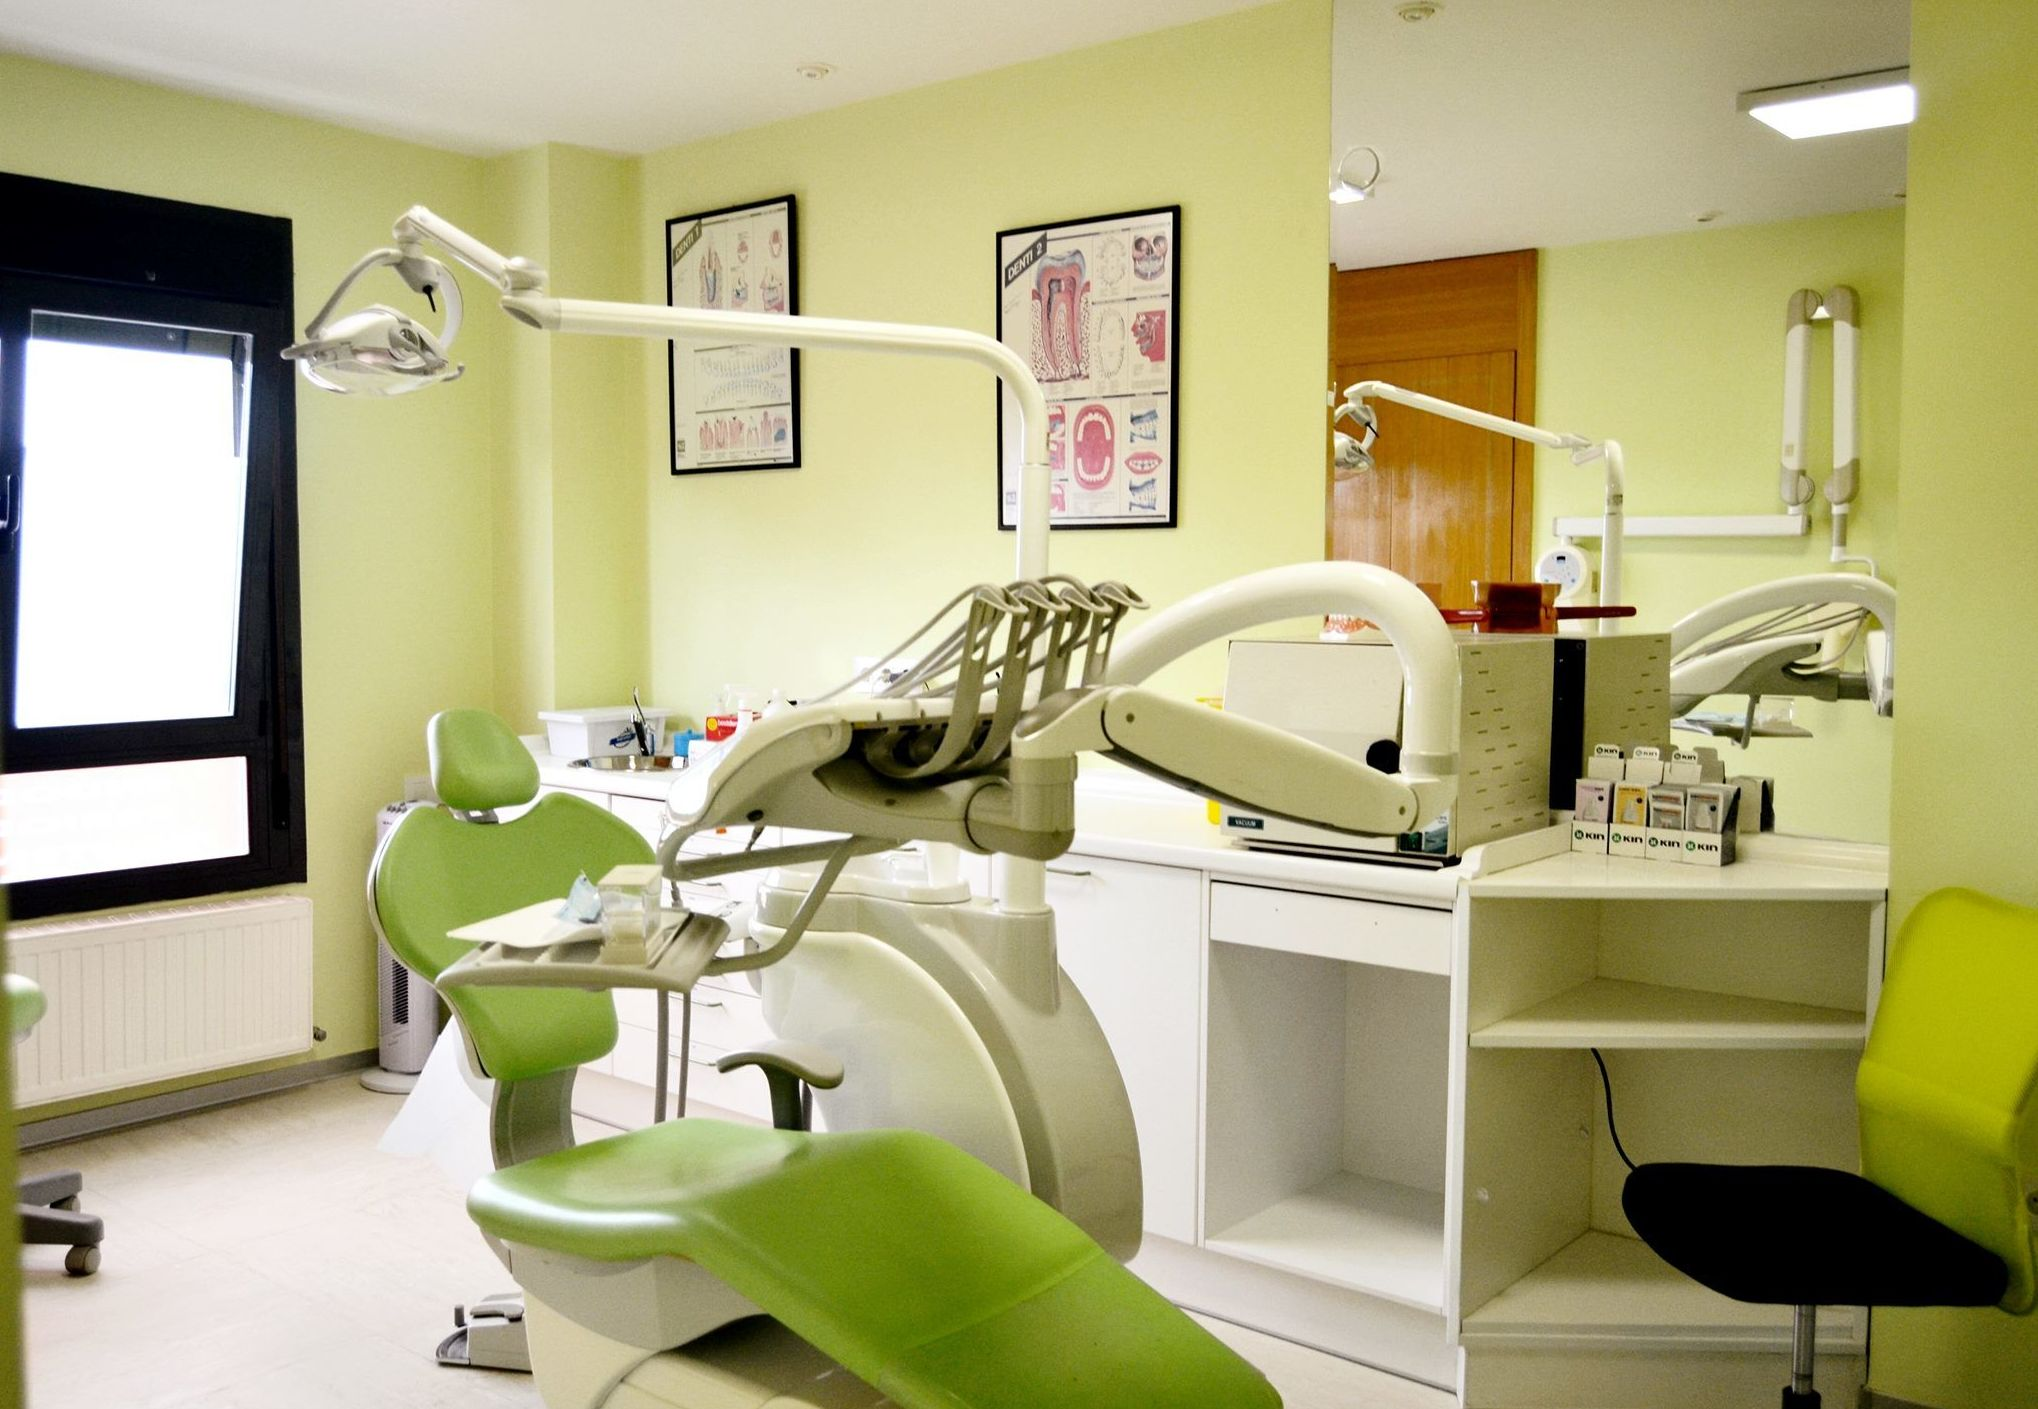 Clínica dental en Ávila.